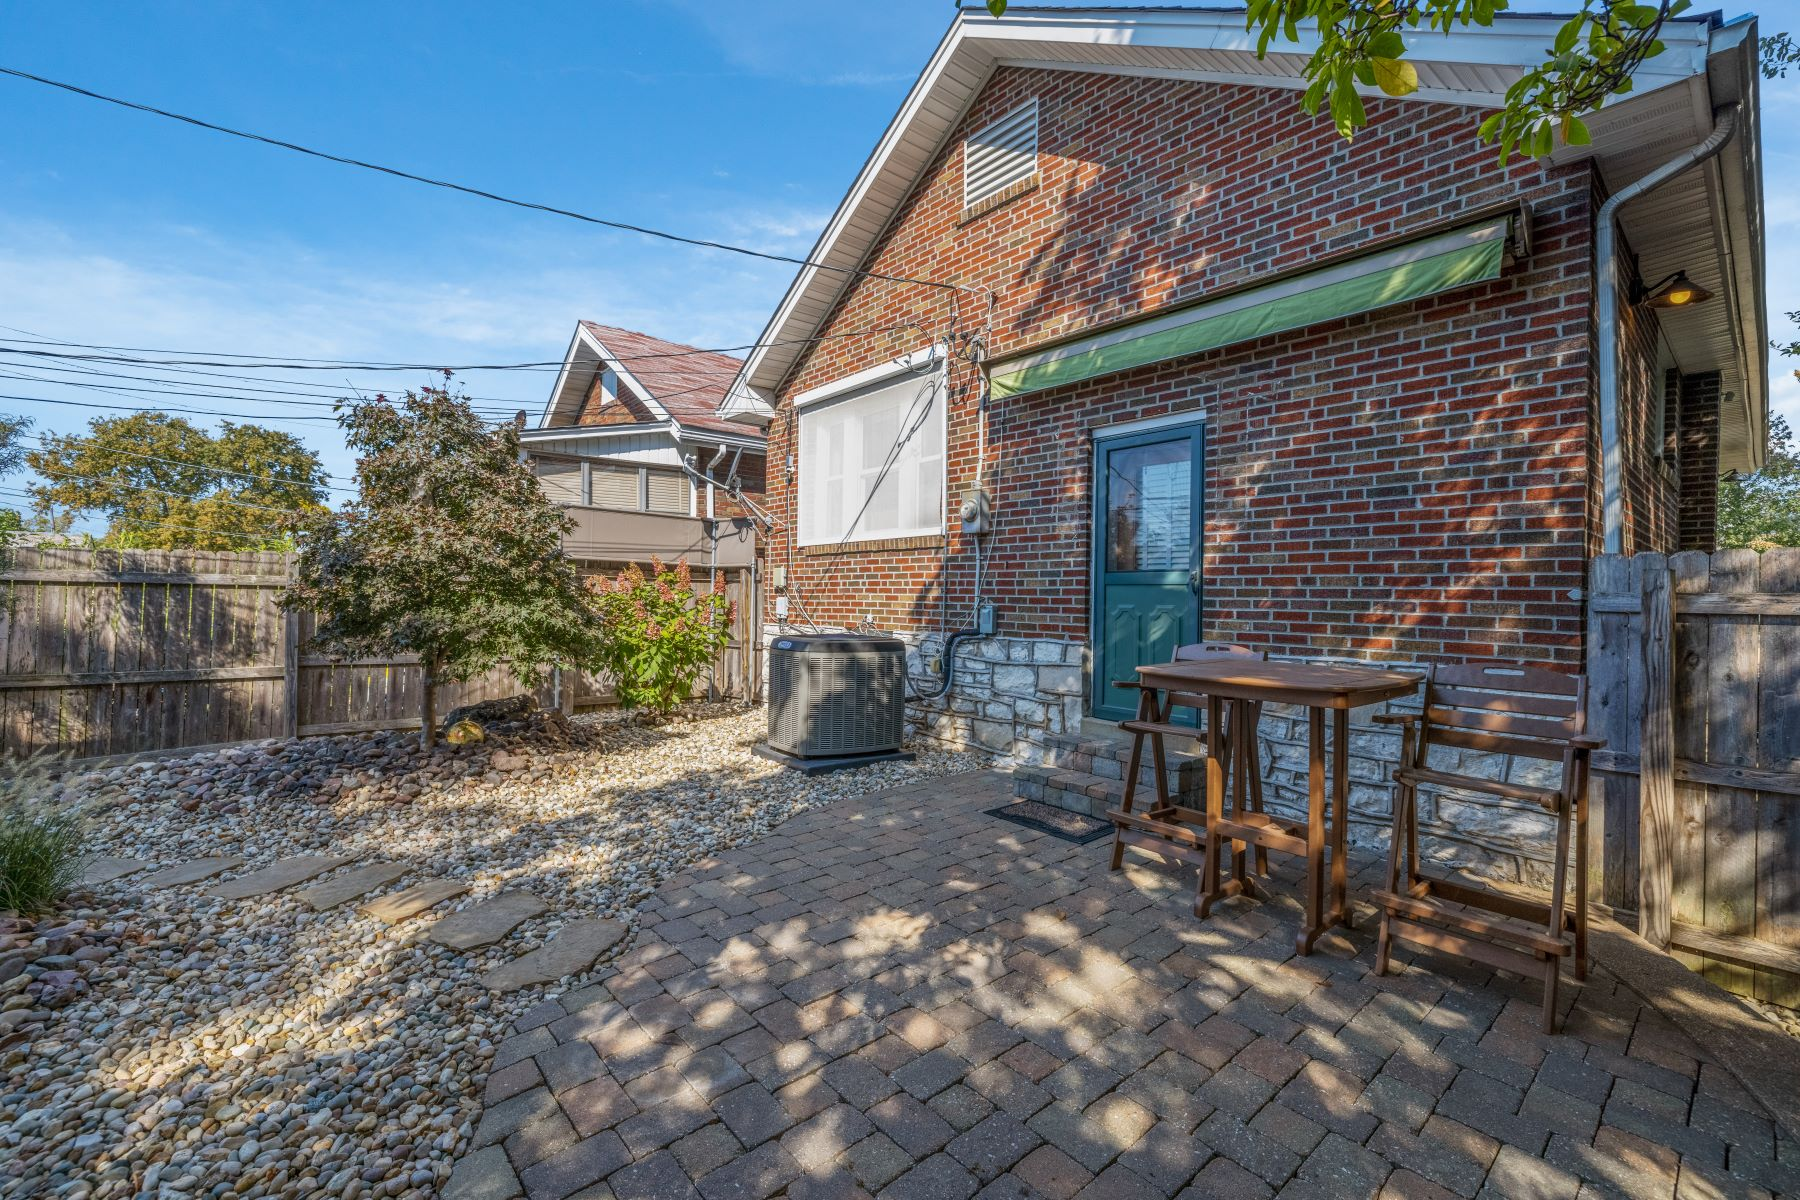 Additional photo for property listing at Updated Urban Bungalow in the Heart of South City 5300 Chippewa Street St. Louis, Missouri 63109 United States